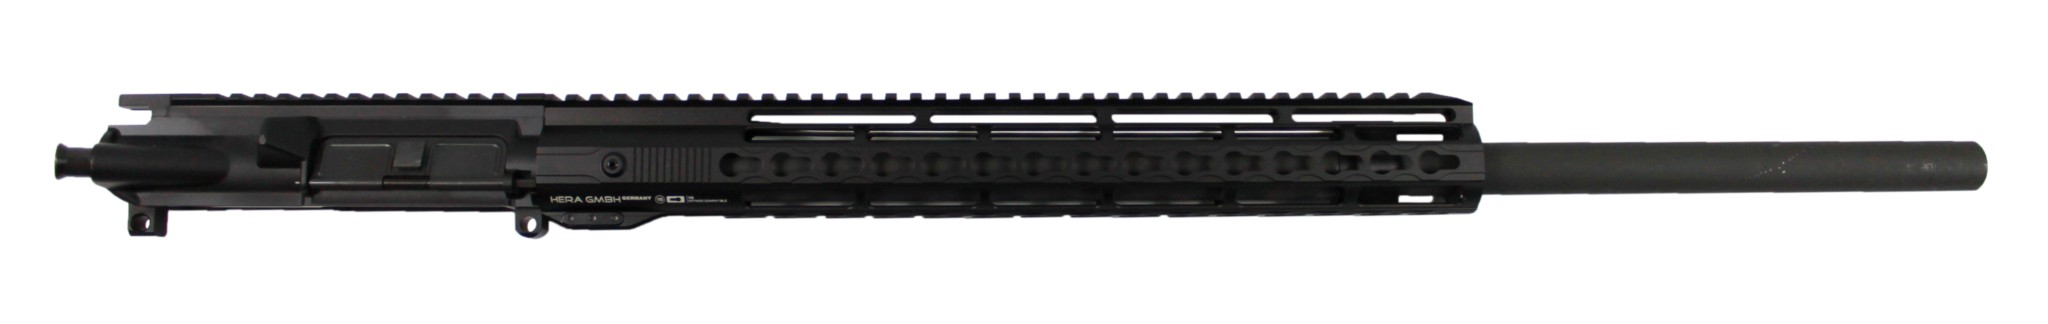 copy of ar 15 overstock upper assembly 24 223 5 56 1 8 15 hera arms keymod ar 15 handguard rail